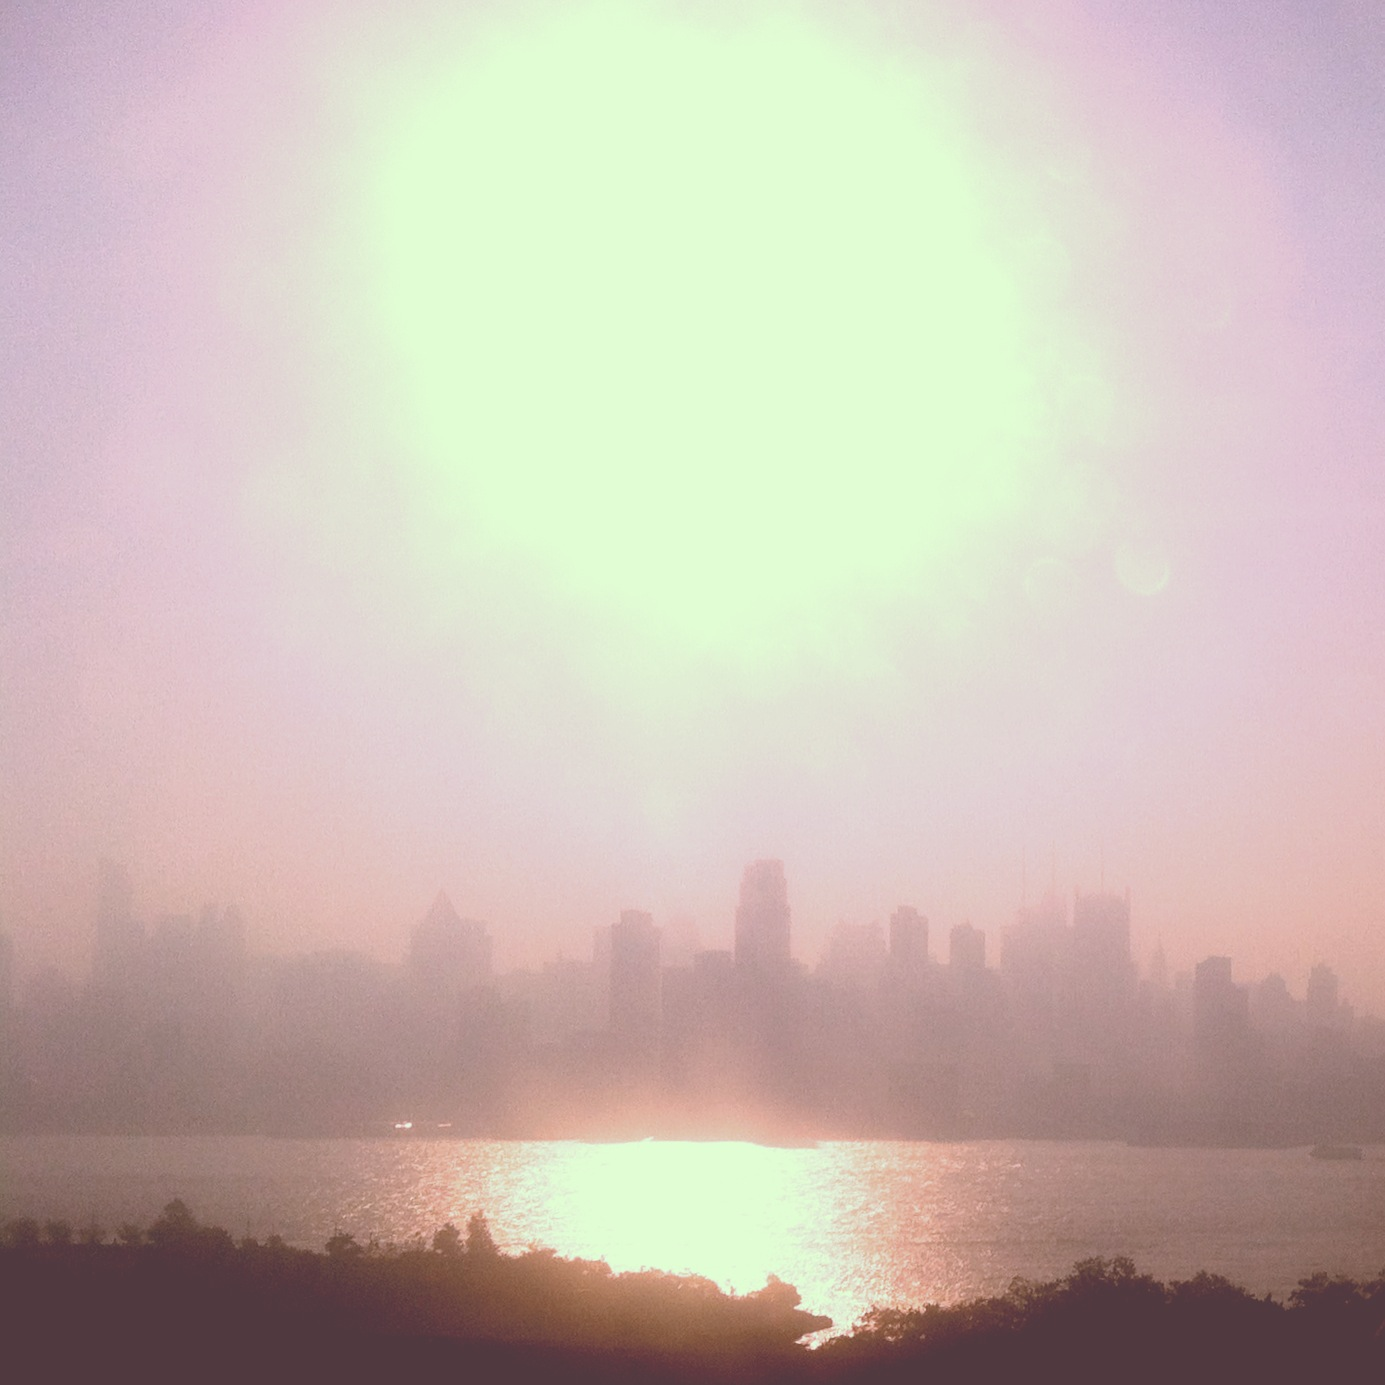 Heatwave Over NYC